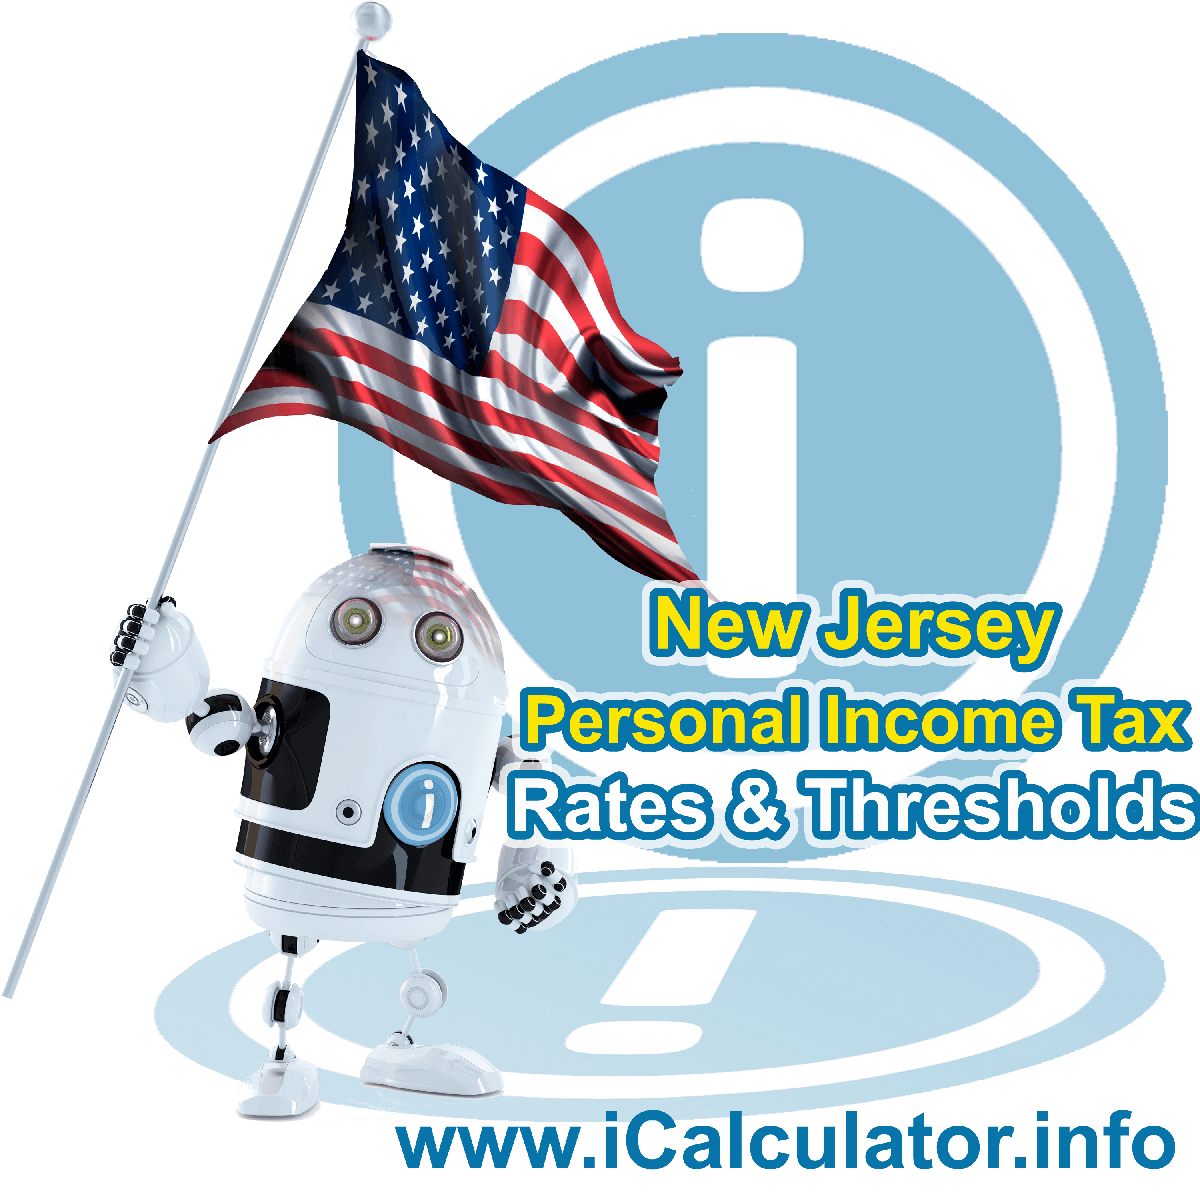 New Jersey State Tax Tables 2013. This image displays details of the New Jersey State Tax Tables for the 2013 tax return year which is provided in support of the 2013 US Tax Calculator